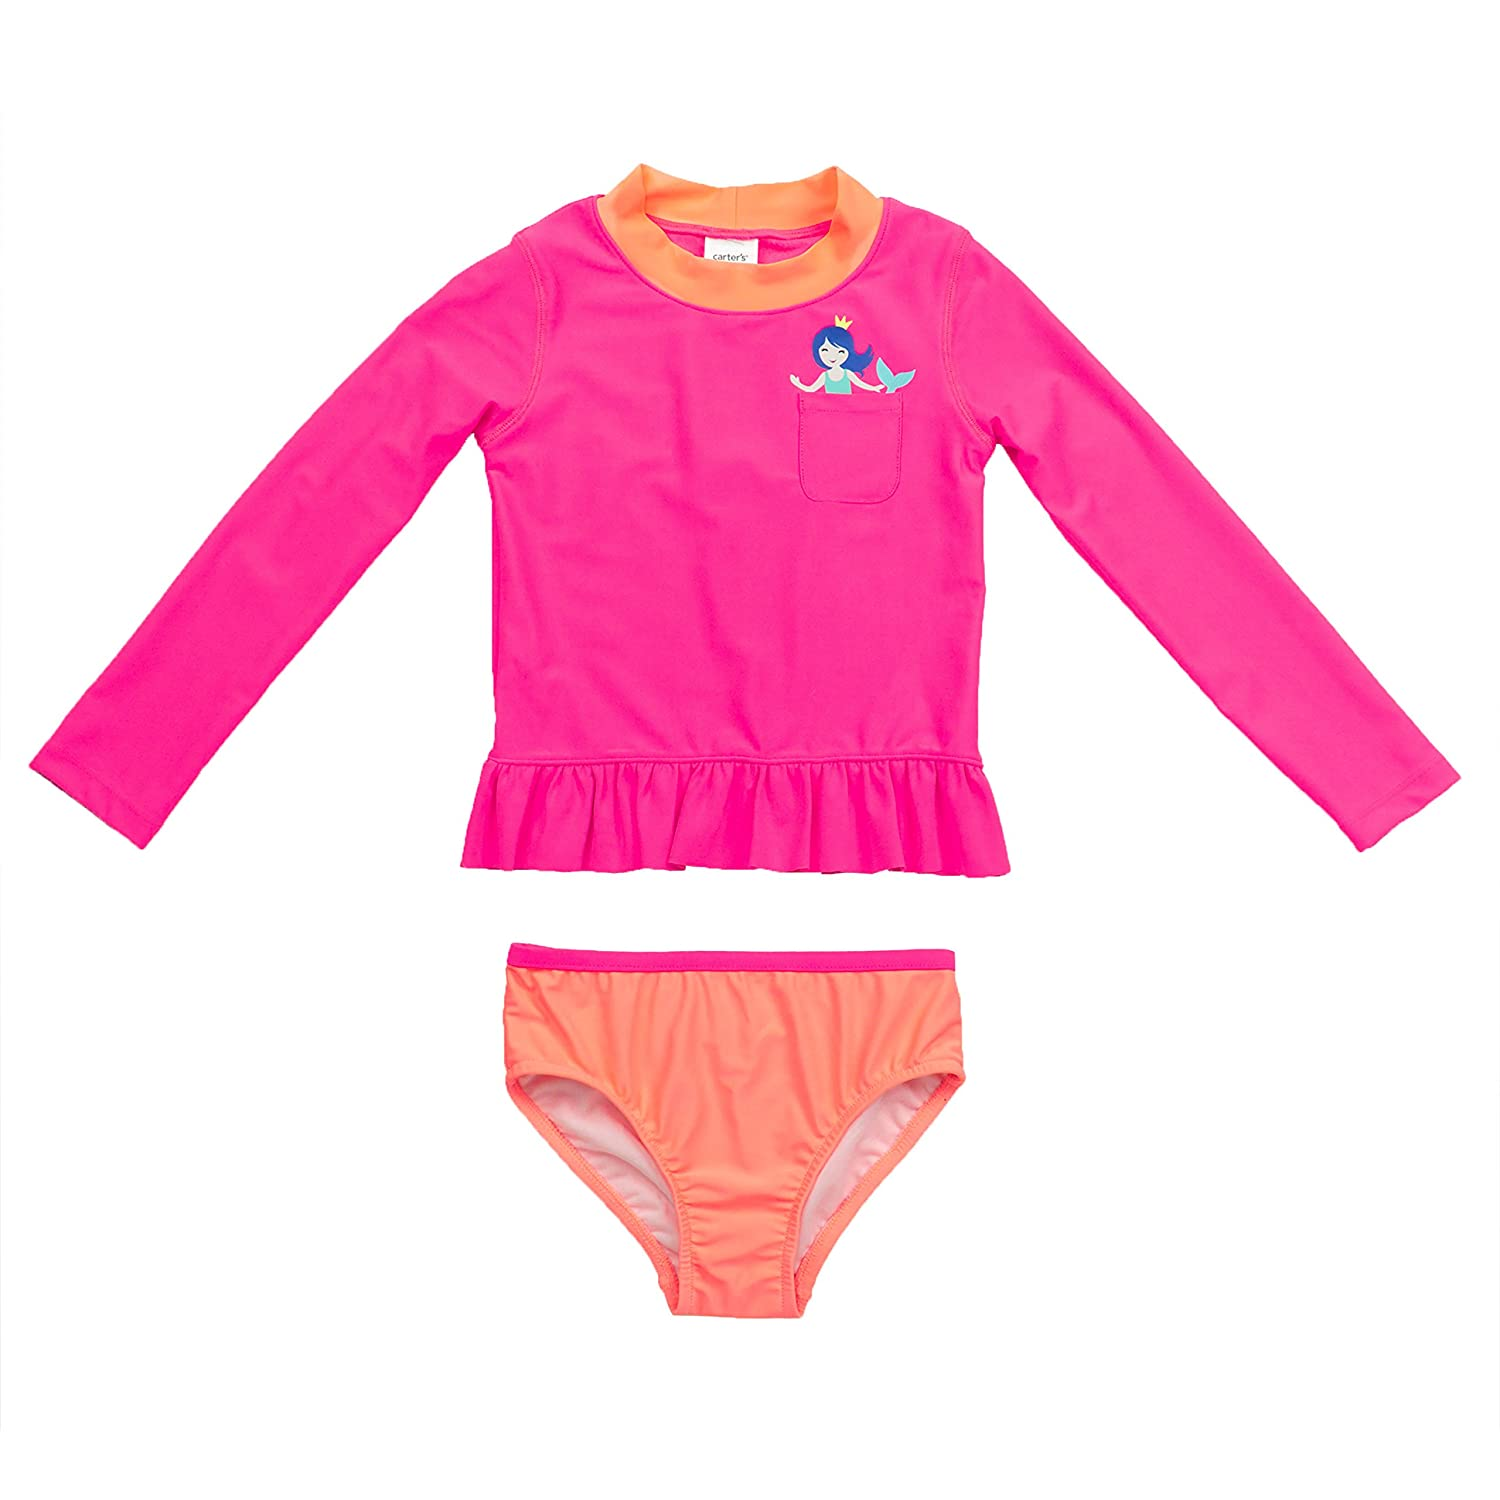 Carter's Baby Girls' Infant Long Sleeve Pocket Mermaid Rash Guard Set, Pink, 12M SC117570